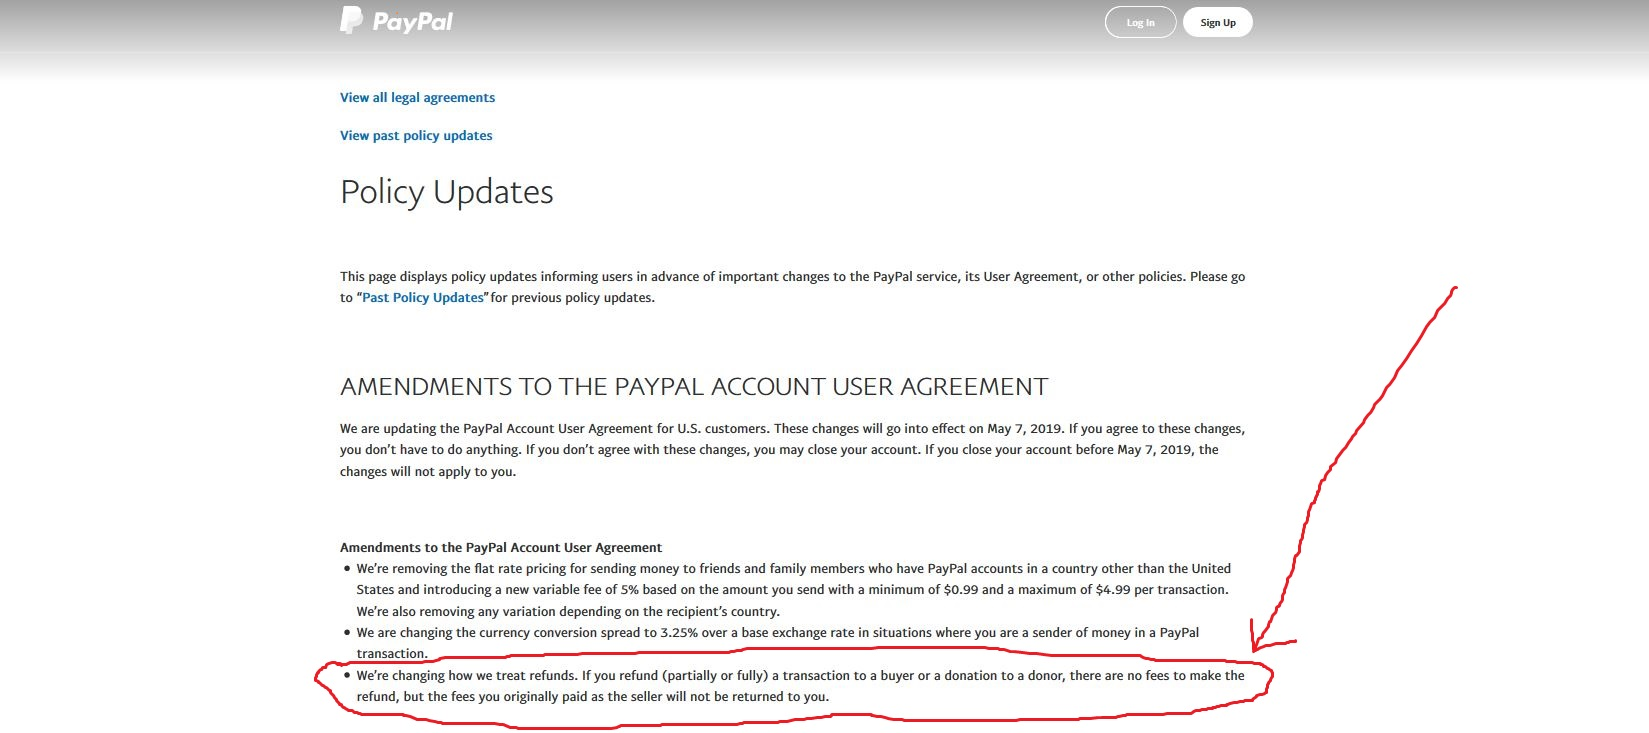 New Changes to PayPal User Agreement on Refunds Policy 2019